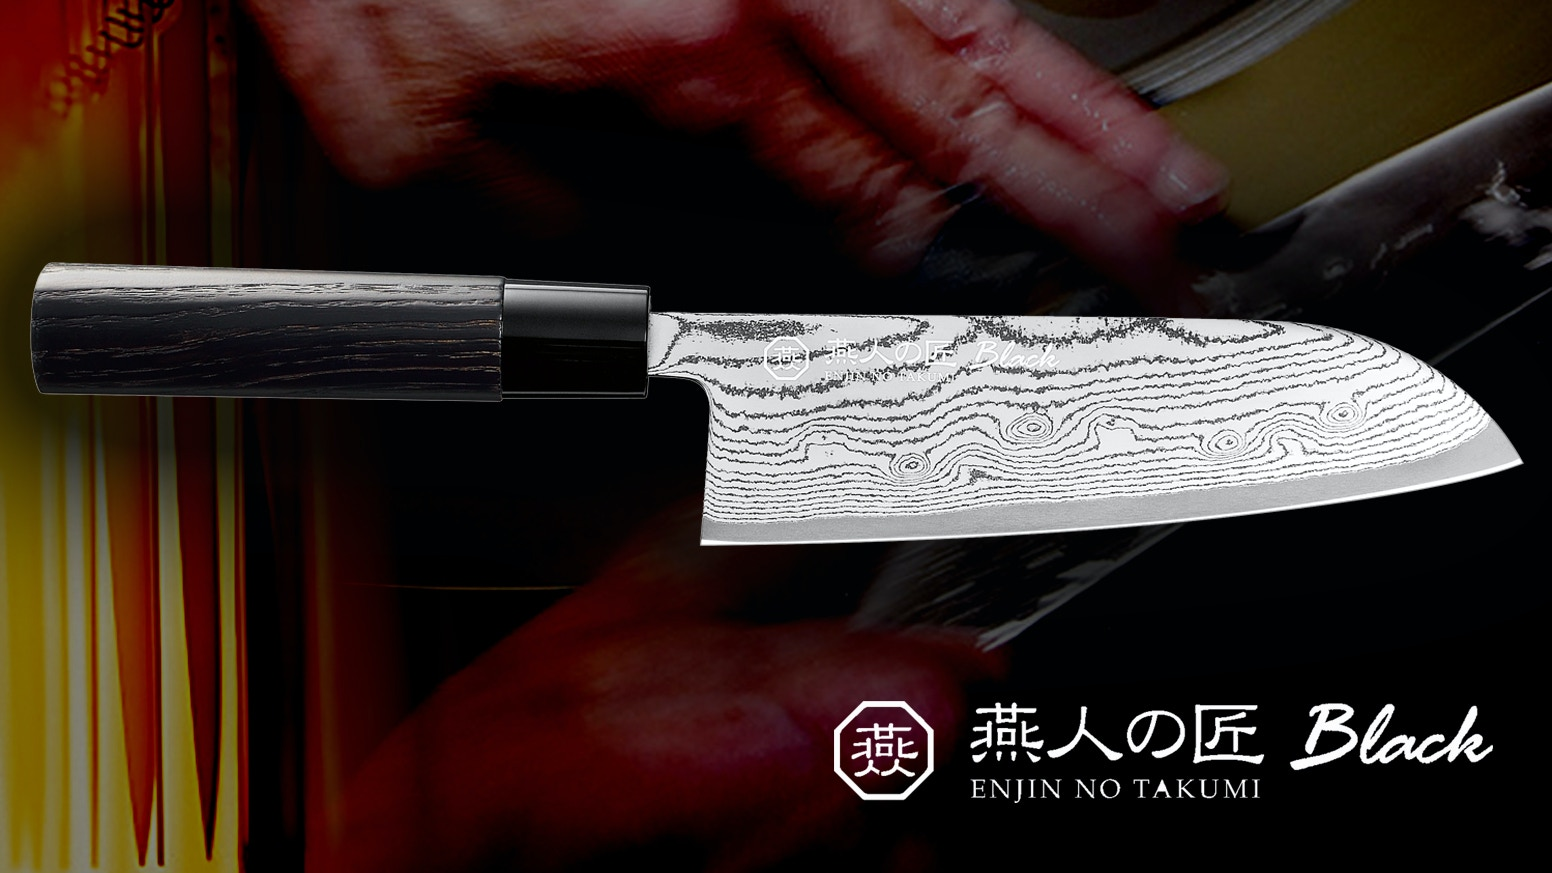 The World's Sharpest Knife Made with 63 Layers of BLACK DP Damascus Steel.